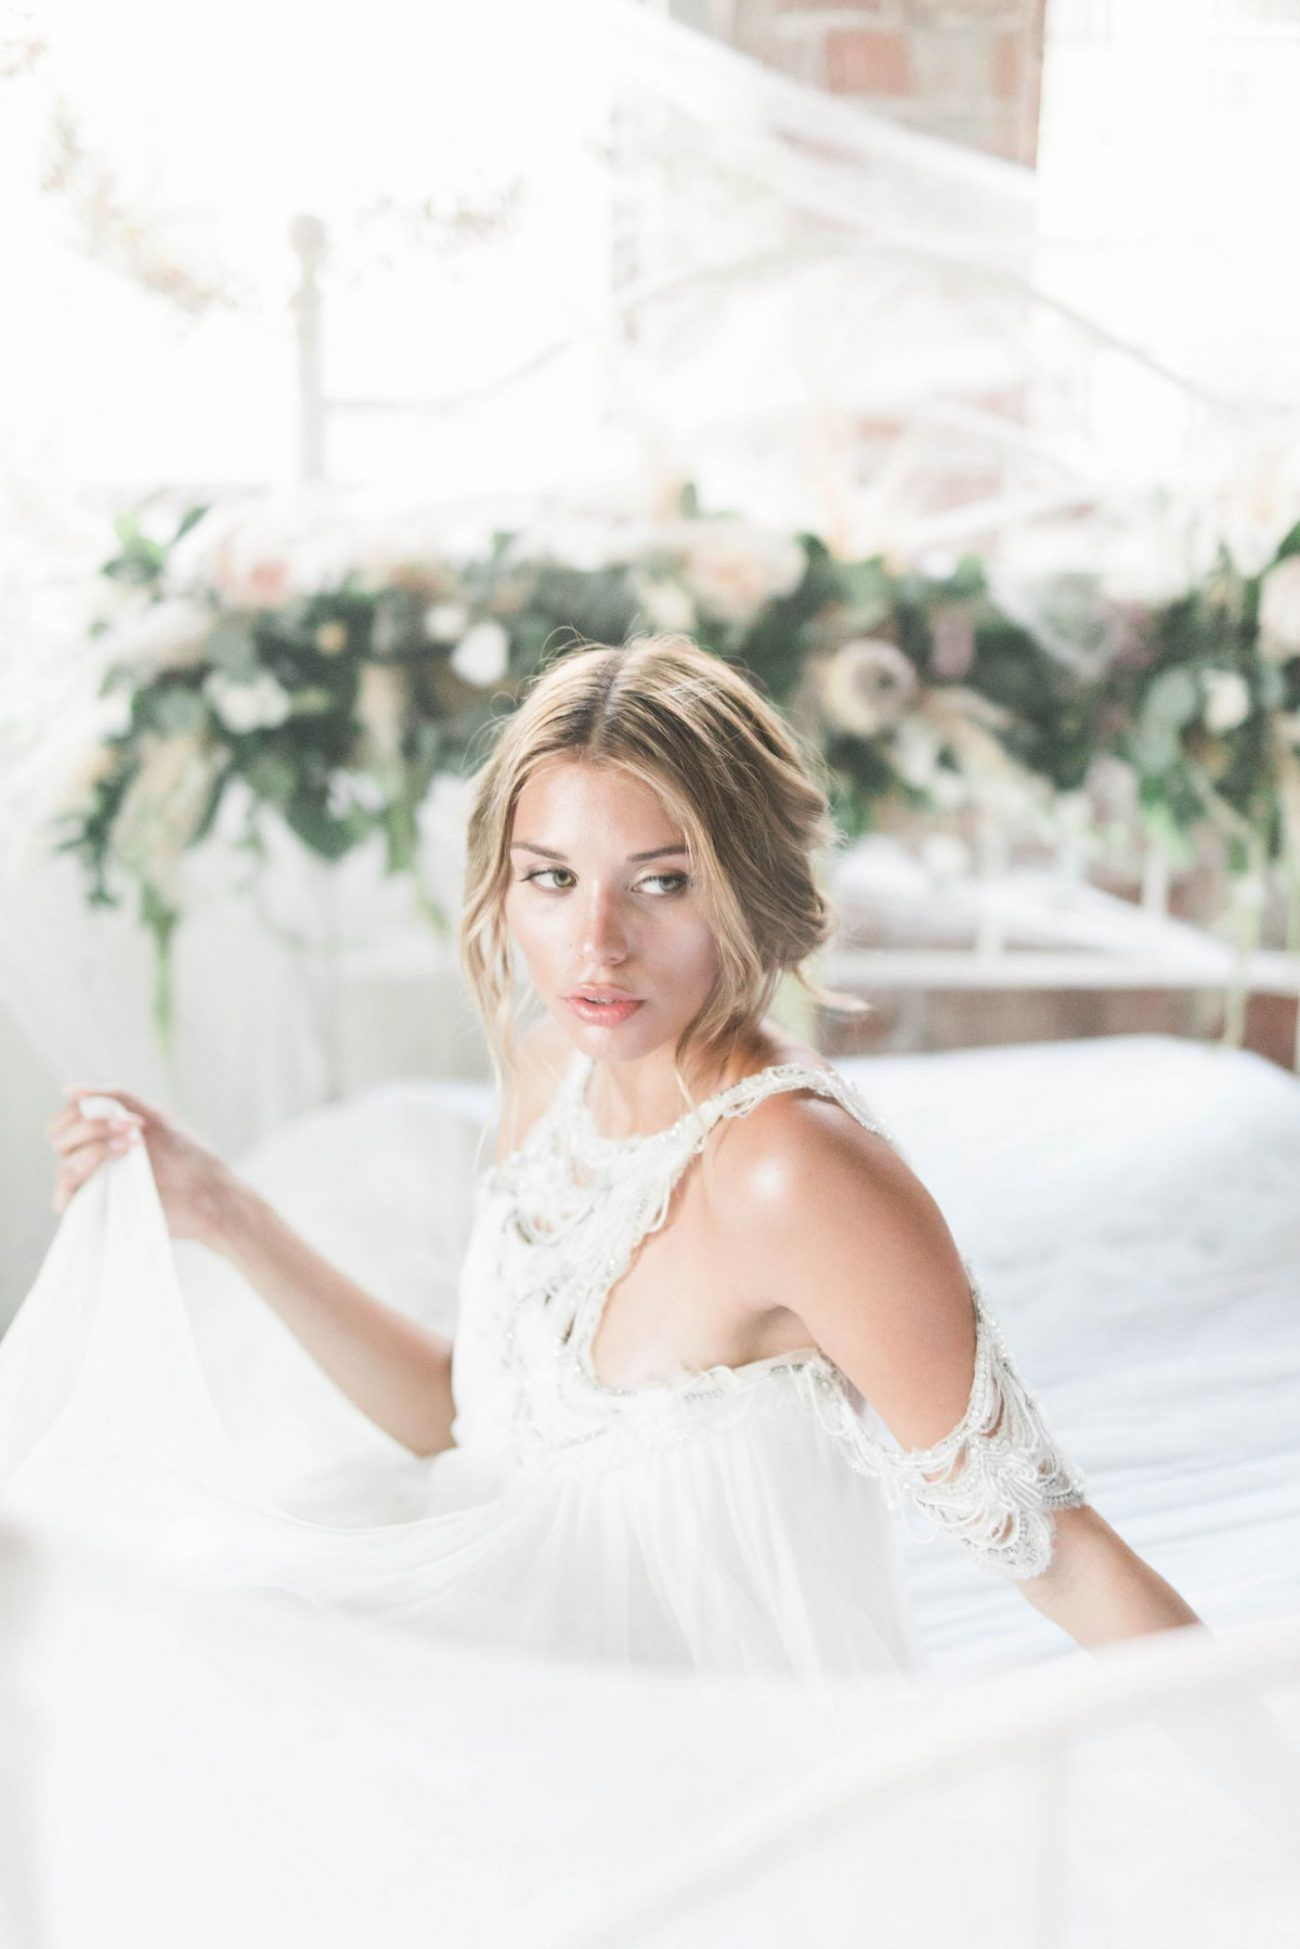 View More: http://ashleyraephotographs.pass.us/eternallove